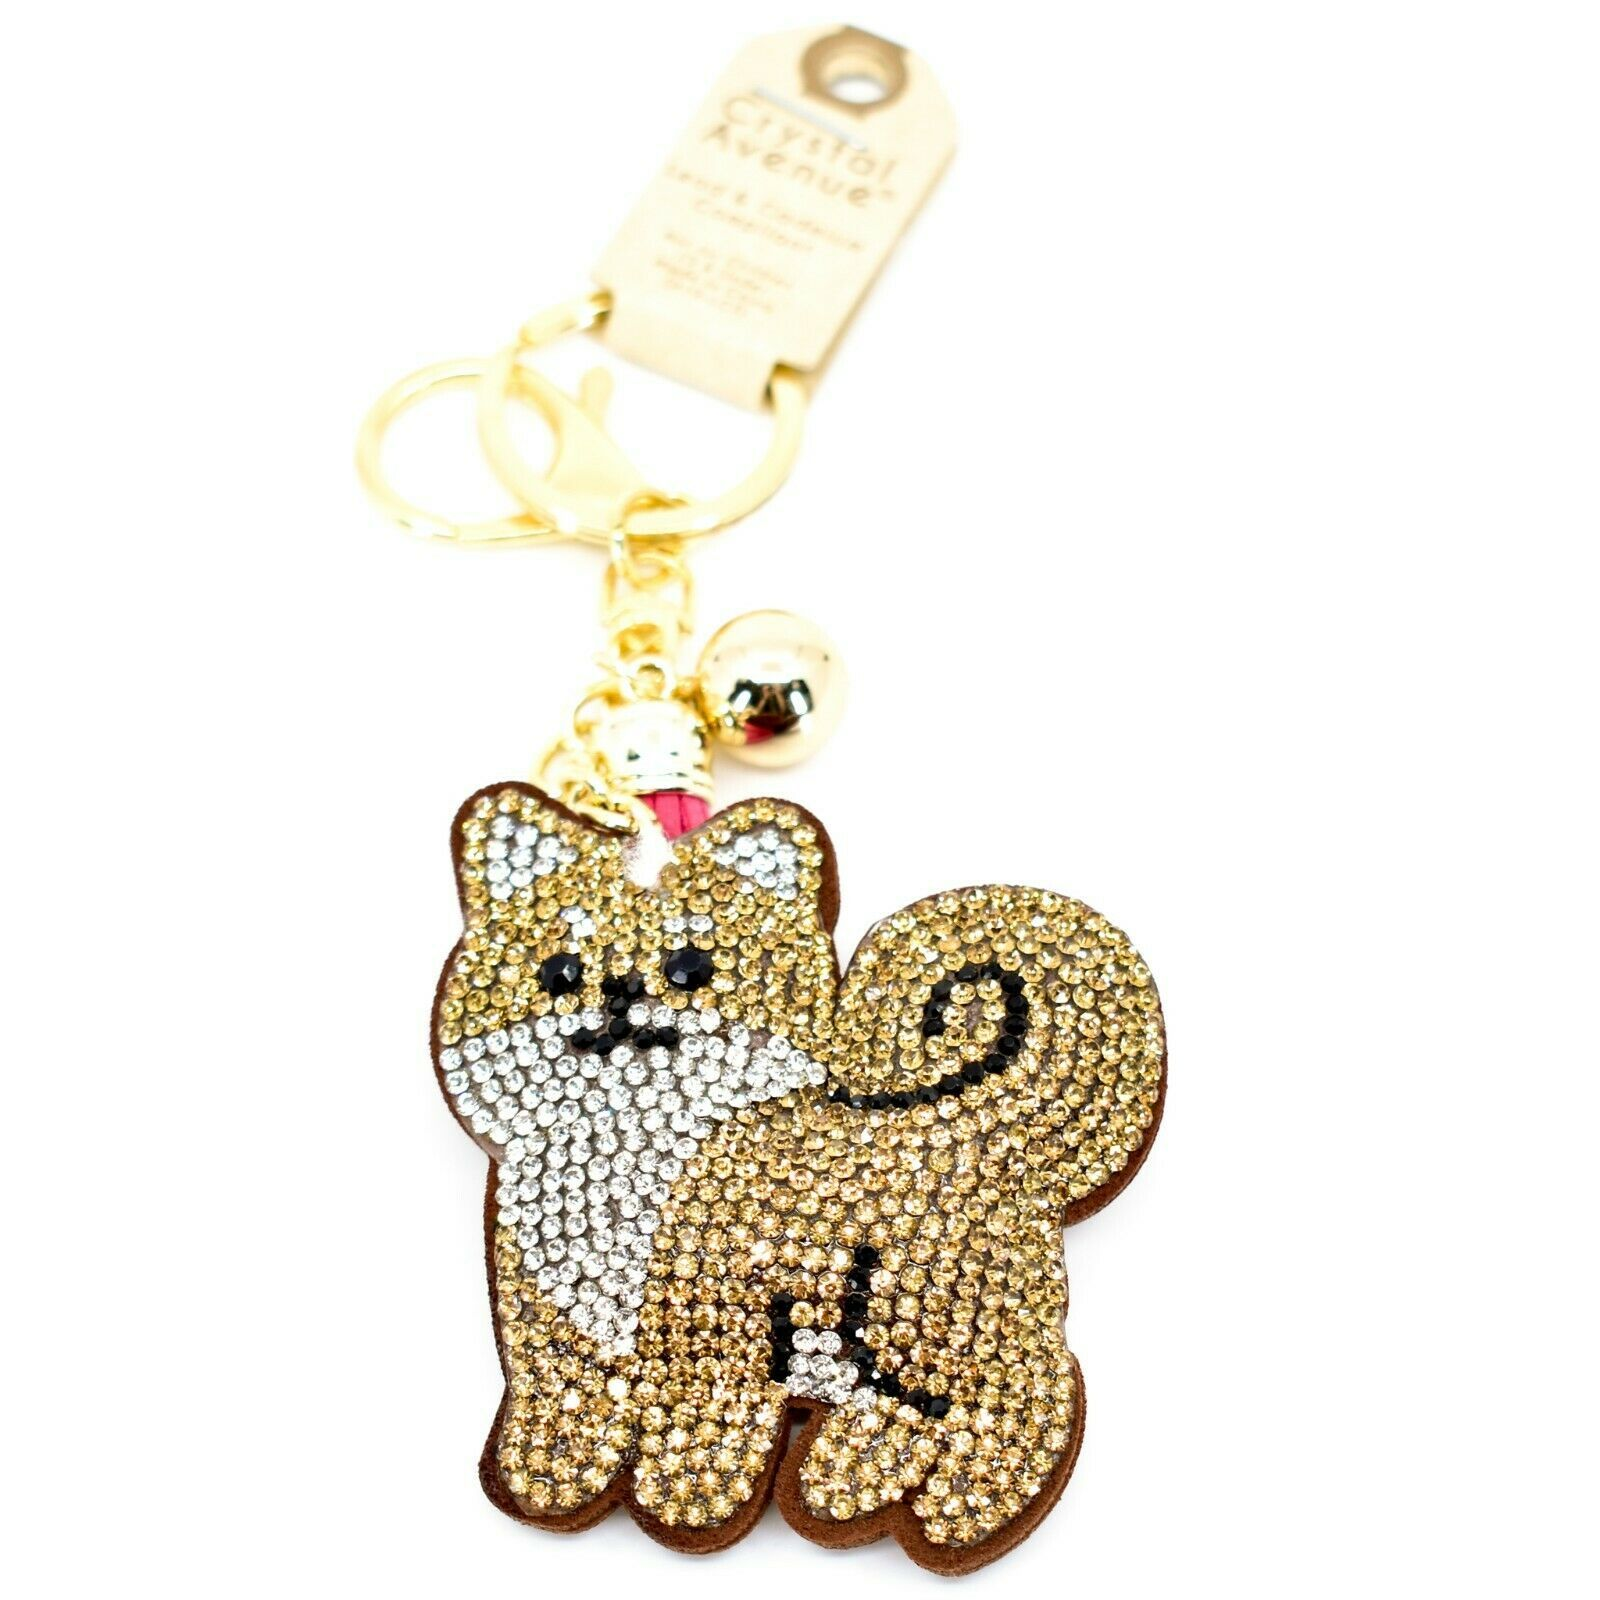 Pave Crystal Accent 3D Stuffed Pillow Tan Brown Fox Keychain Key Chain